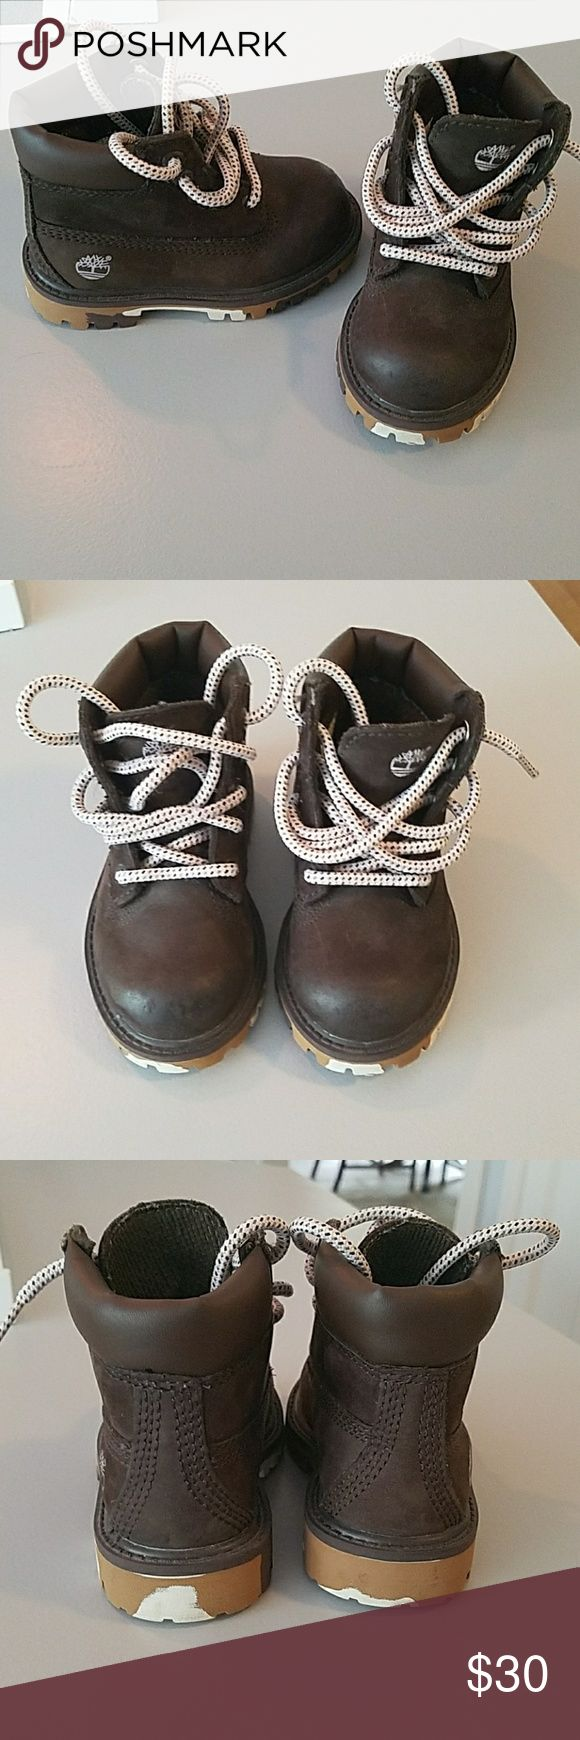 Toddler timberland boots Dark brown toddler 6c boots in excellent condition Timberland Shoes Boots